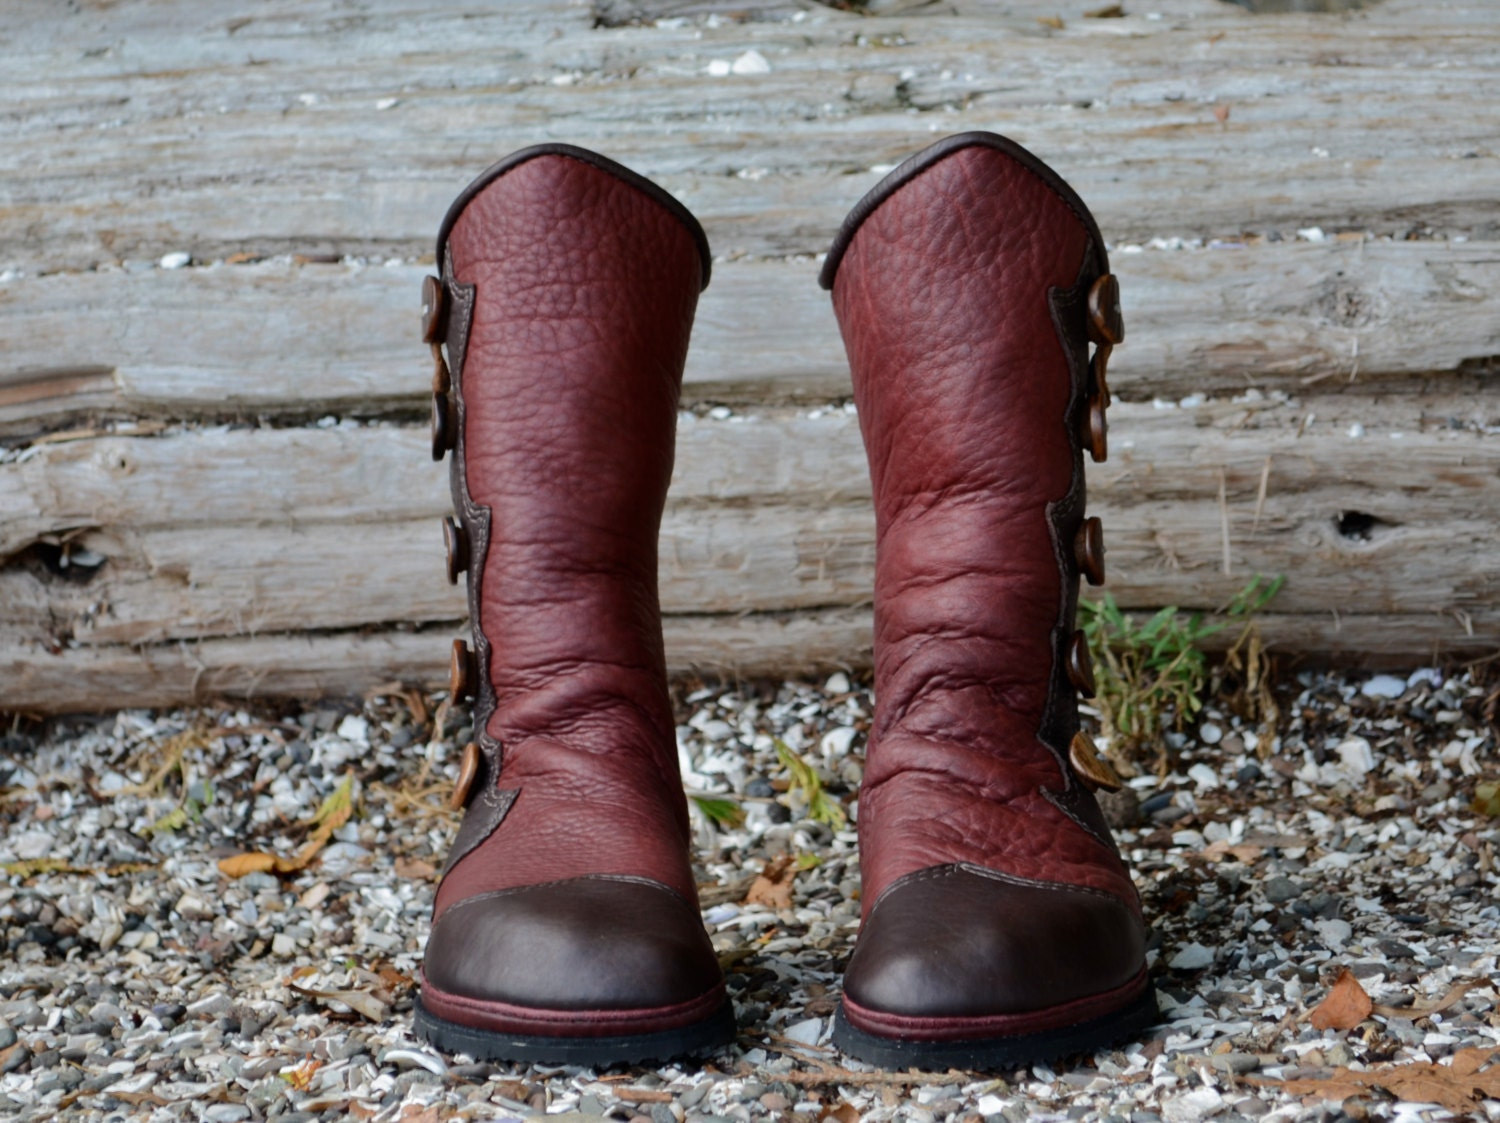 Salt Spring Island Moccasins Leather Women's Boots